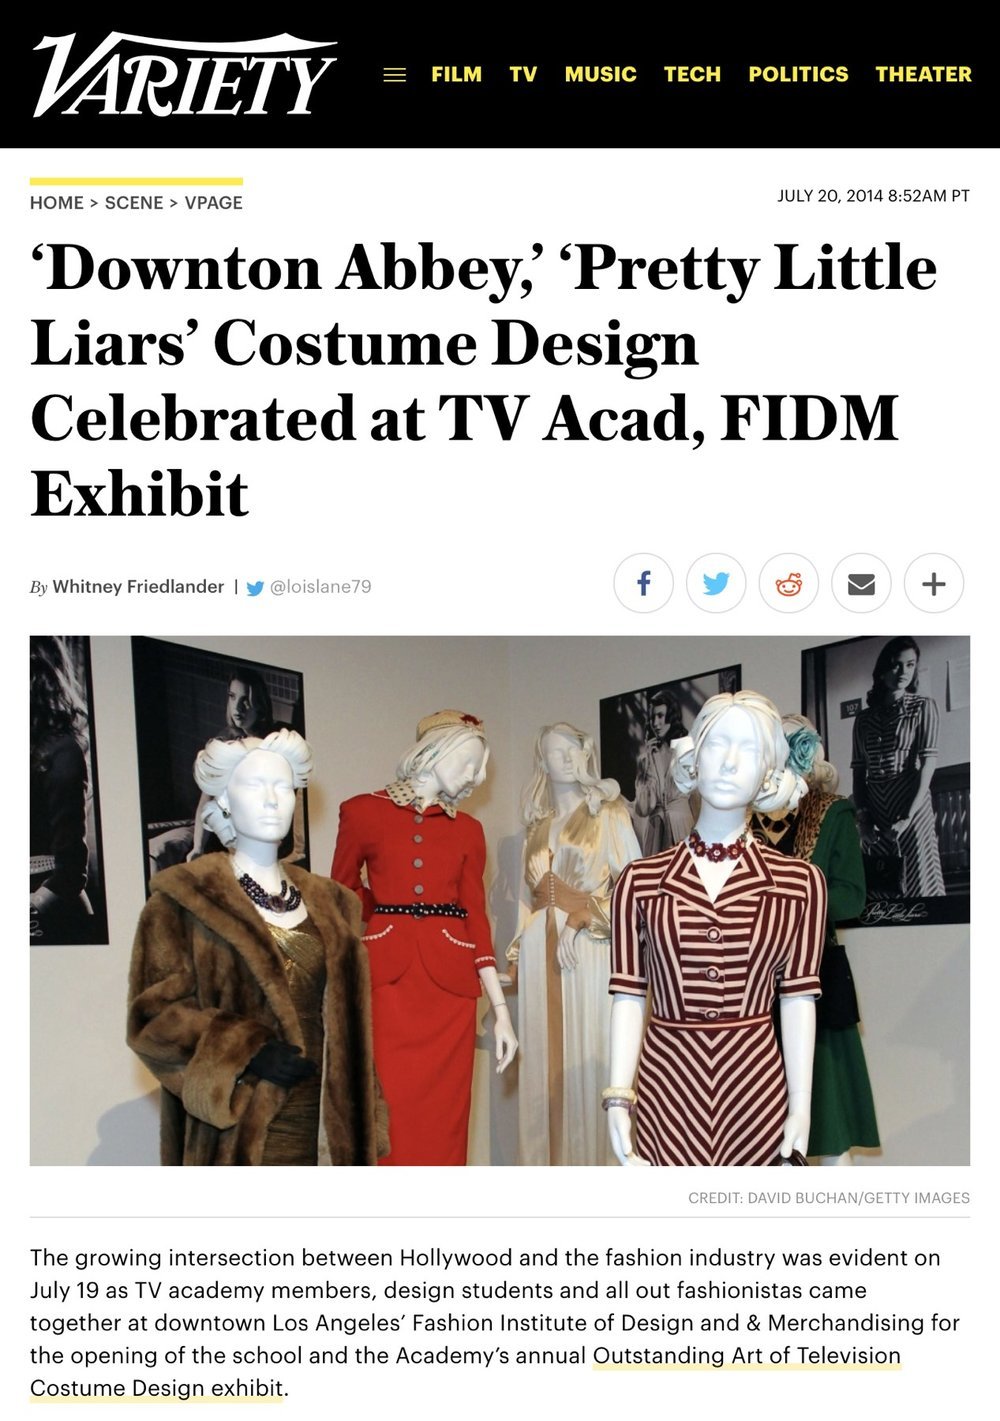 Variety  -  'Downton Abbey,' 'Pretty Little Liars' Costume Design Celebrated at TV Acad, FIDM Exhibit